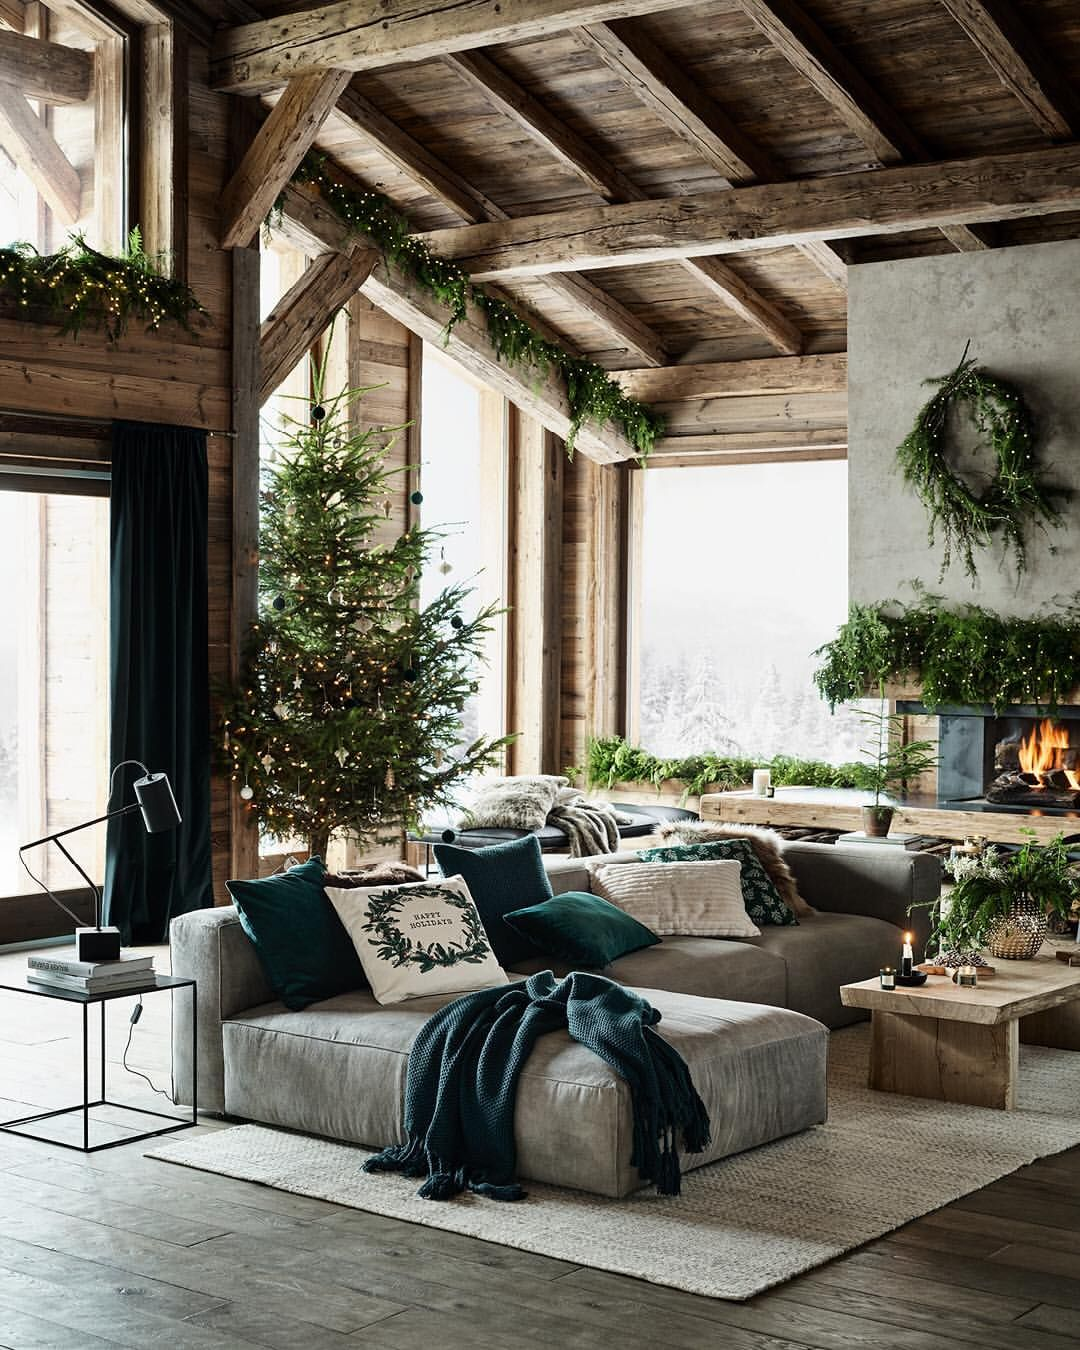 "H&M Home on Instagram: ""It's finally here — our most decorative season of the year"